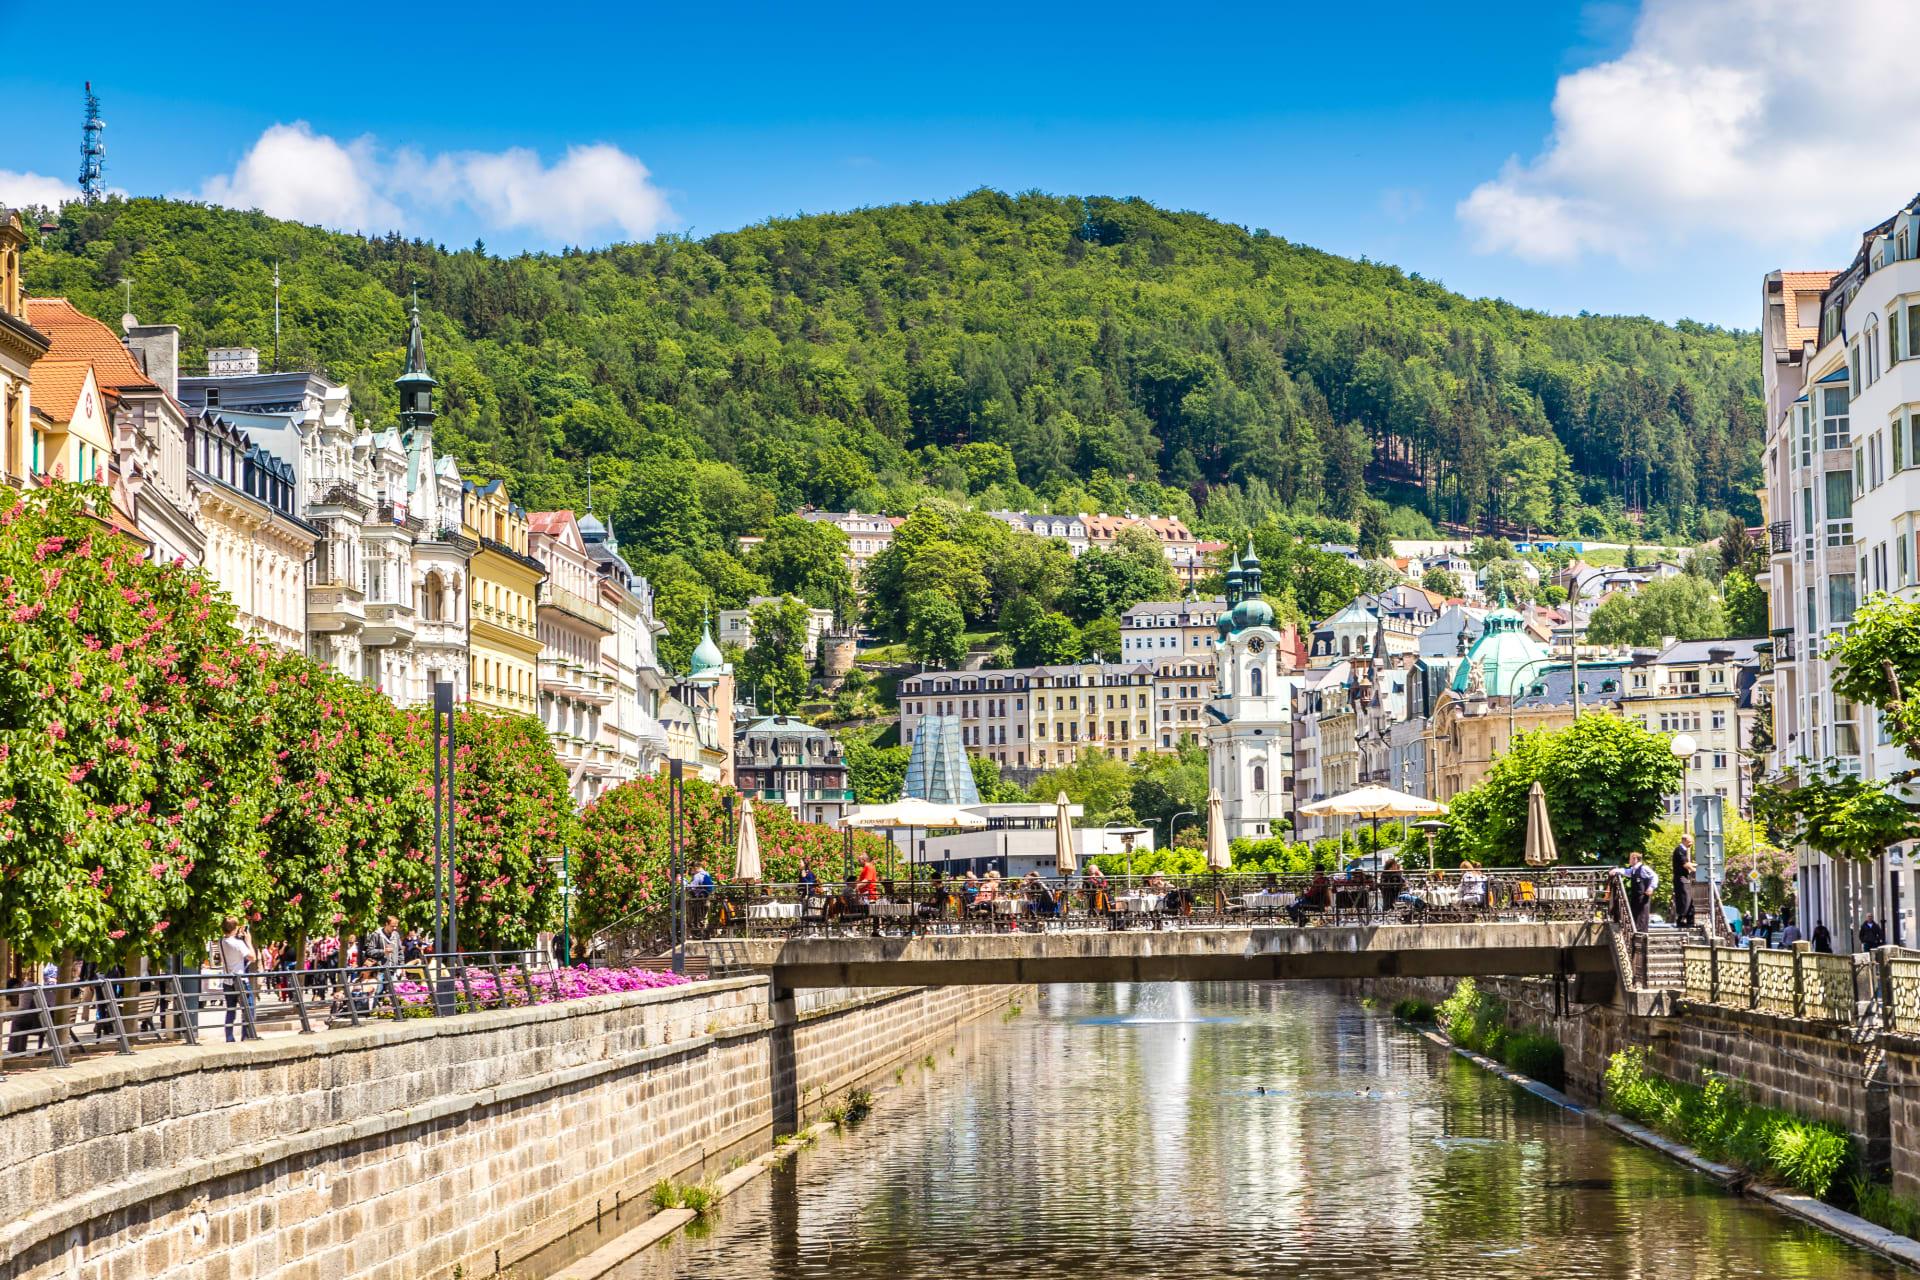 Karlovy Vary - Karlovy Vary - The Most Famous Czech Spa Town